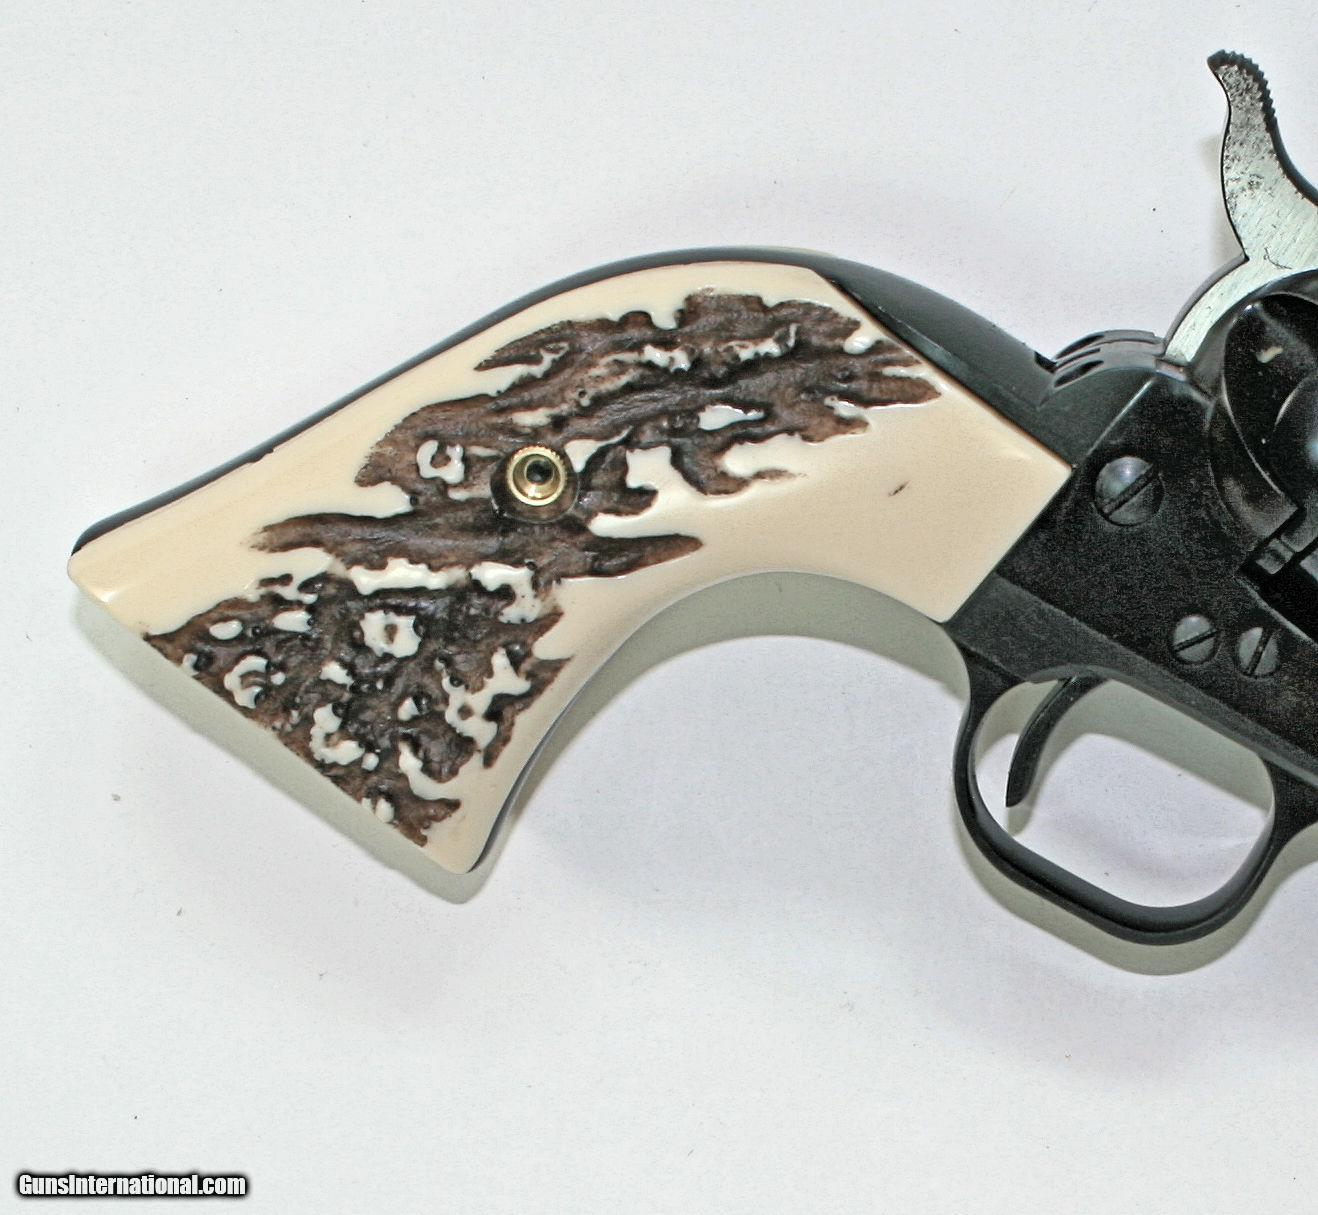 Ruger Vaquero XR3-Red Stag-Like Grips for sale